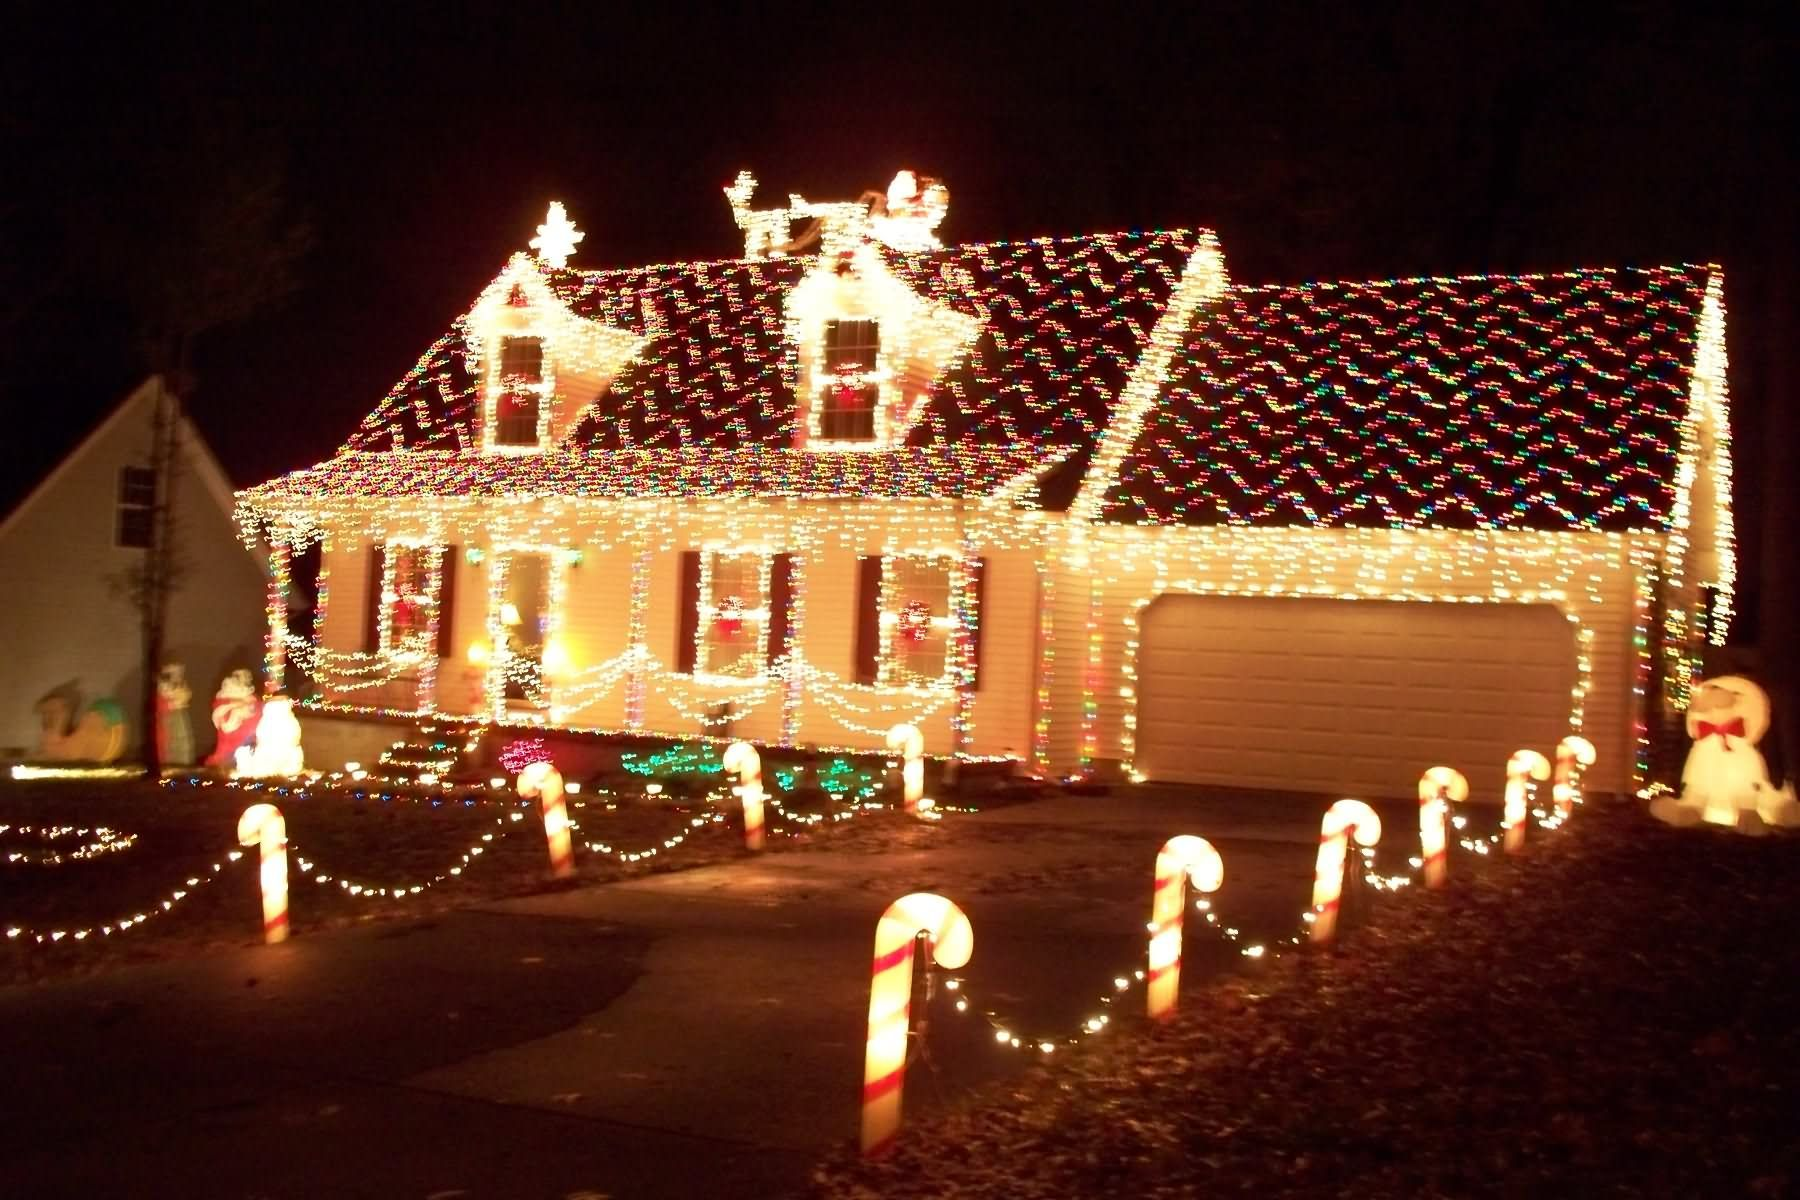 Christmas Houses Decorated Gorgeous Christmas Decorations For Your House  Home Design Ideas O_O . Decorating Inspiration